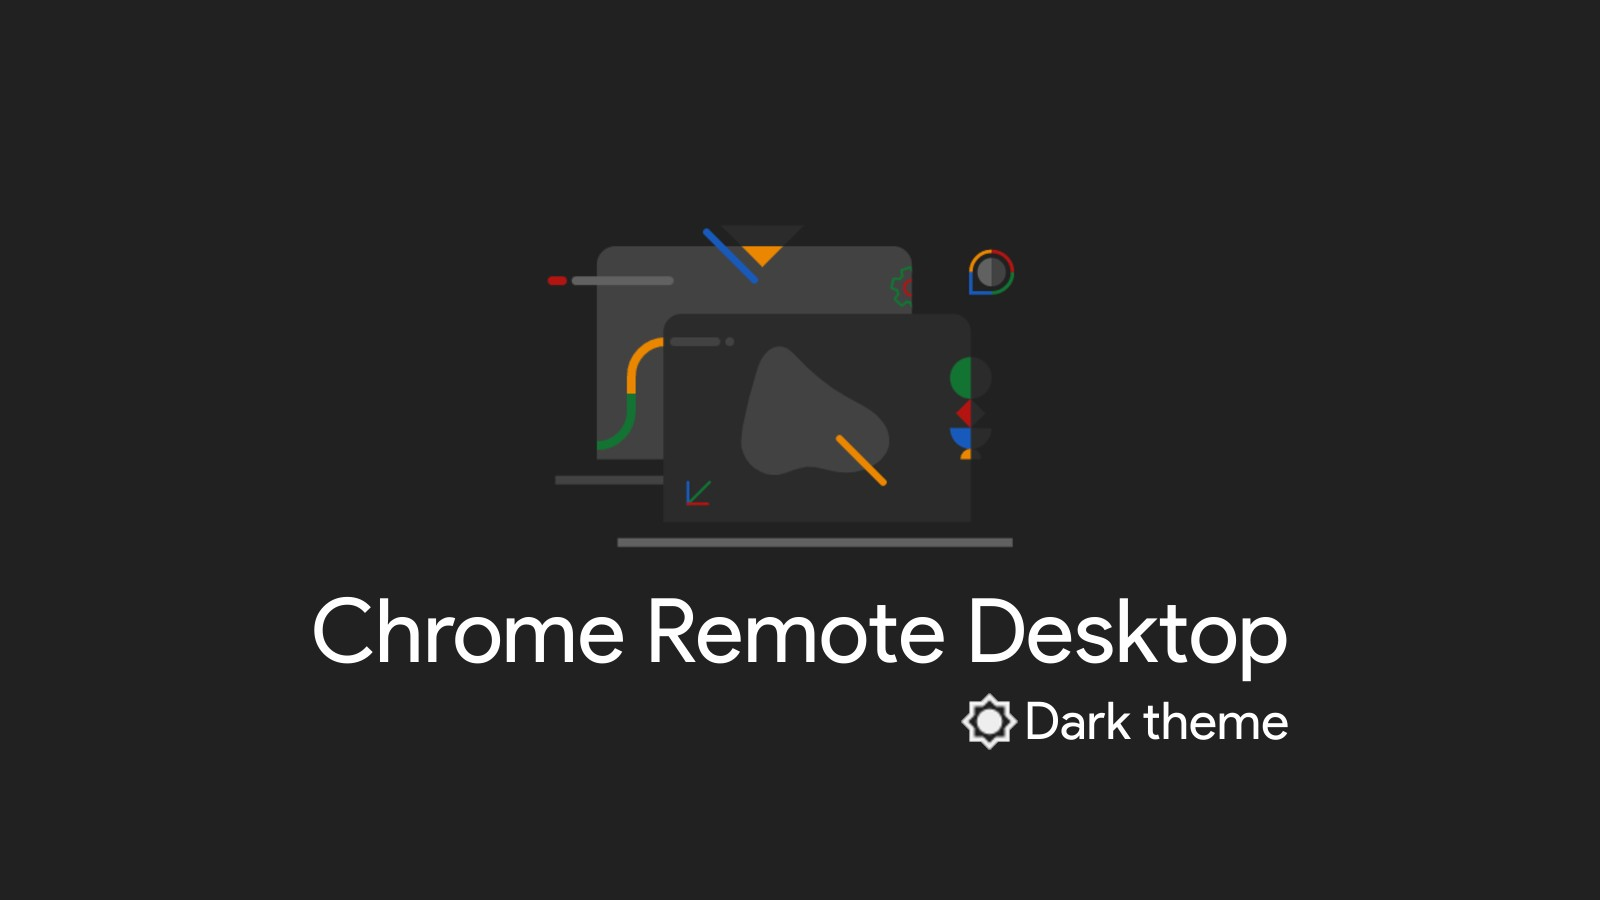 Chrome Remote Desktop gets a redesign complete with a dark theme